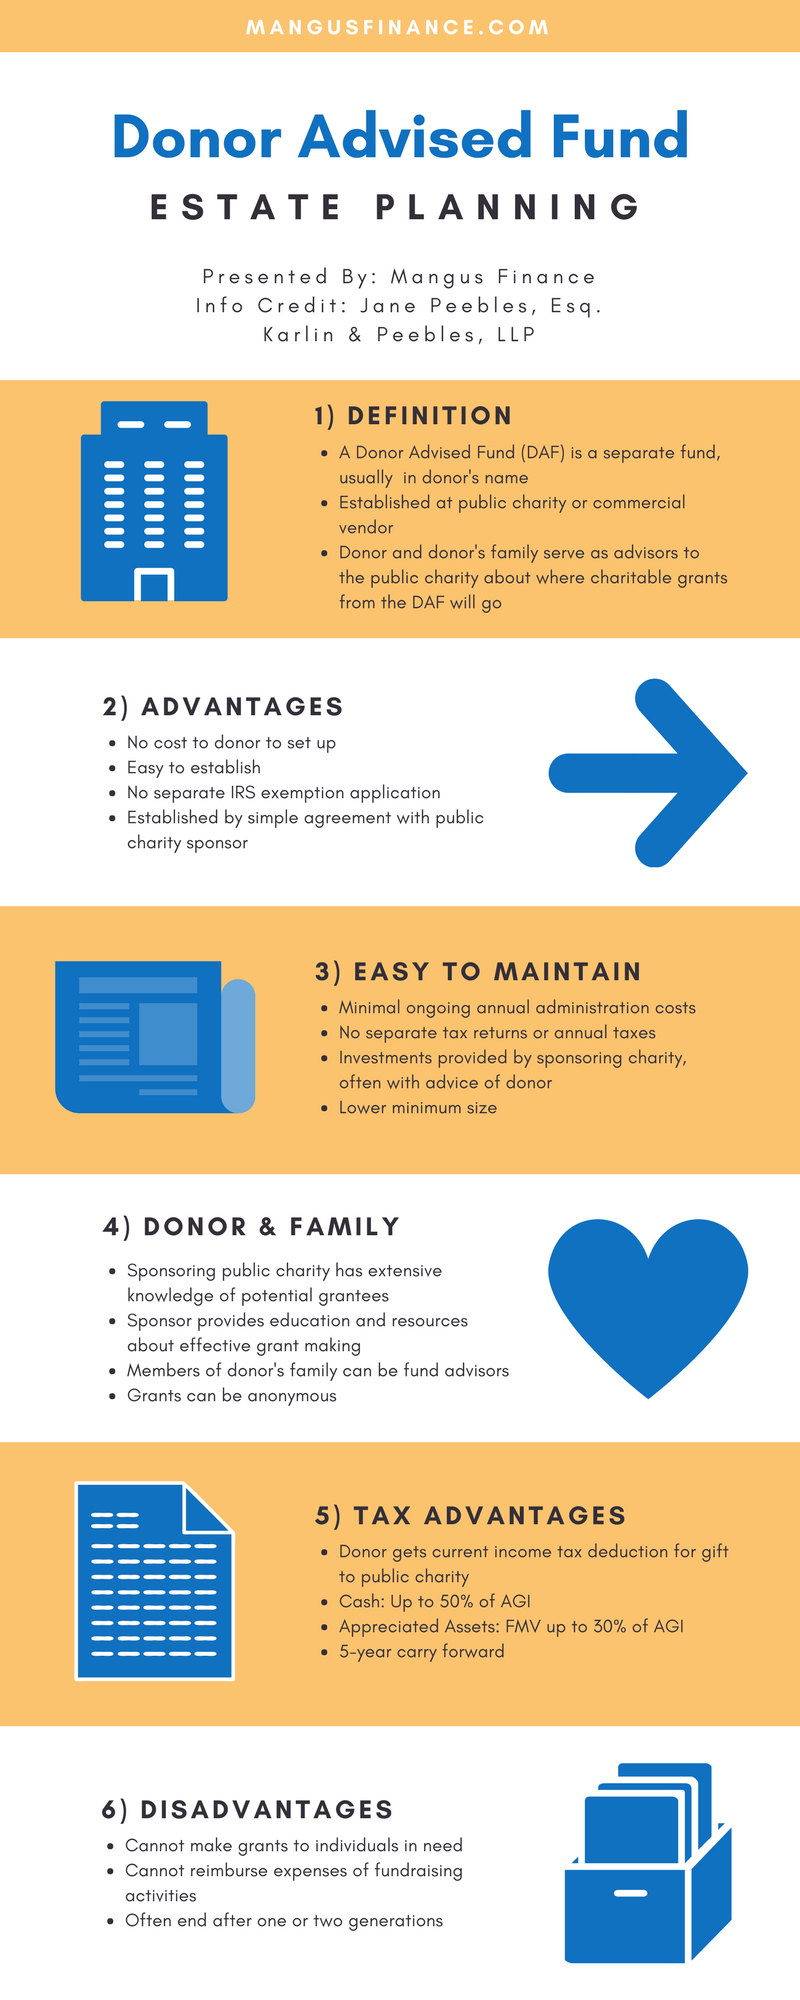 donor advised fund estate plan planning family families tax advantages donor donors sponsors